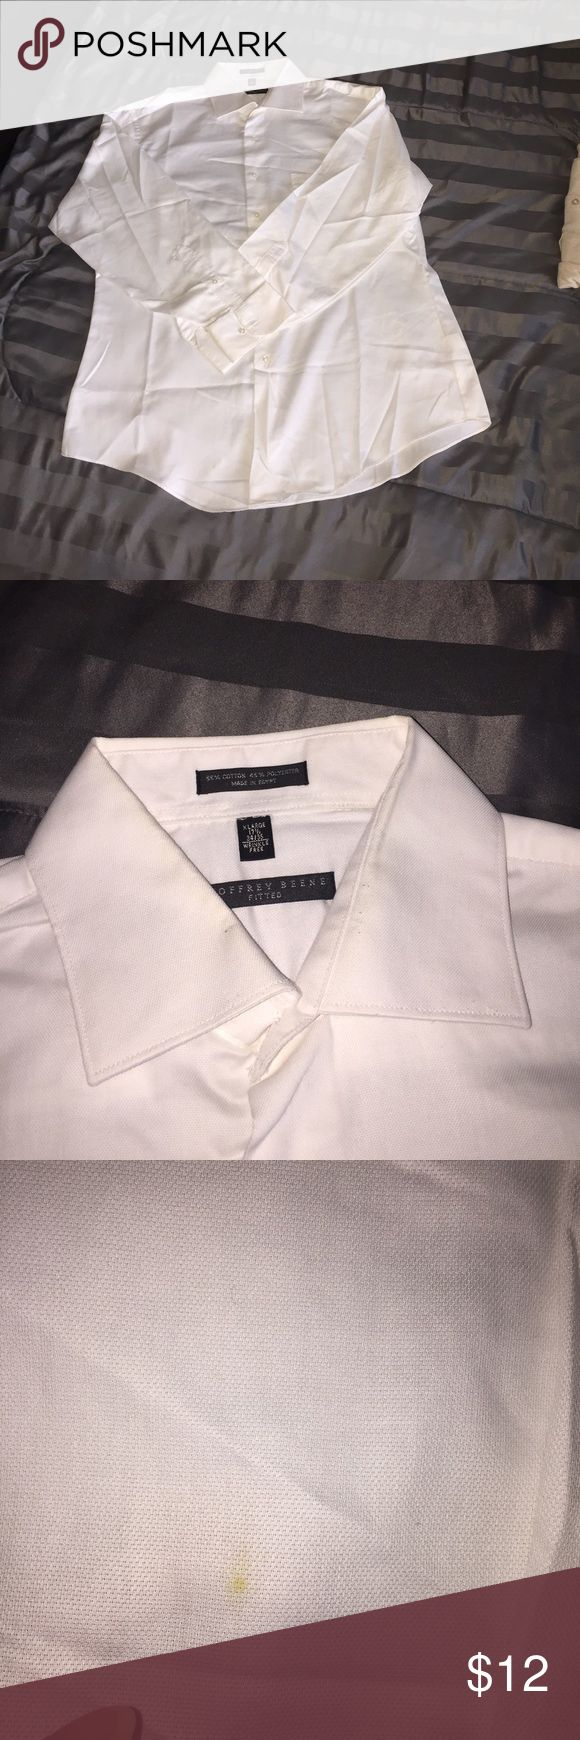 🔴3 FOR $20🔴FITTED GEOFFREY BEENE DRESS SHIRT XL NICE DRESS SHIRT.  ONLY FLAW IS ON THE BOTTOM WEAR IT IS TUCKED IN.  🔴GREAT DEALS AND HUGE SALE!  EVERYTHING $10 AND UNDER IS 4 FOR $10.  EVERYTHING $20 AND UNDER IS 3 FOR $20.  PLEASE FEEL FREE TO ASK QUESTIONS. 🔴 Geoffrey Beene Shirts Dress Shirts